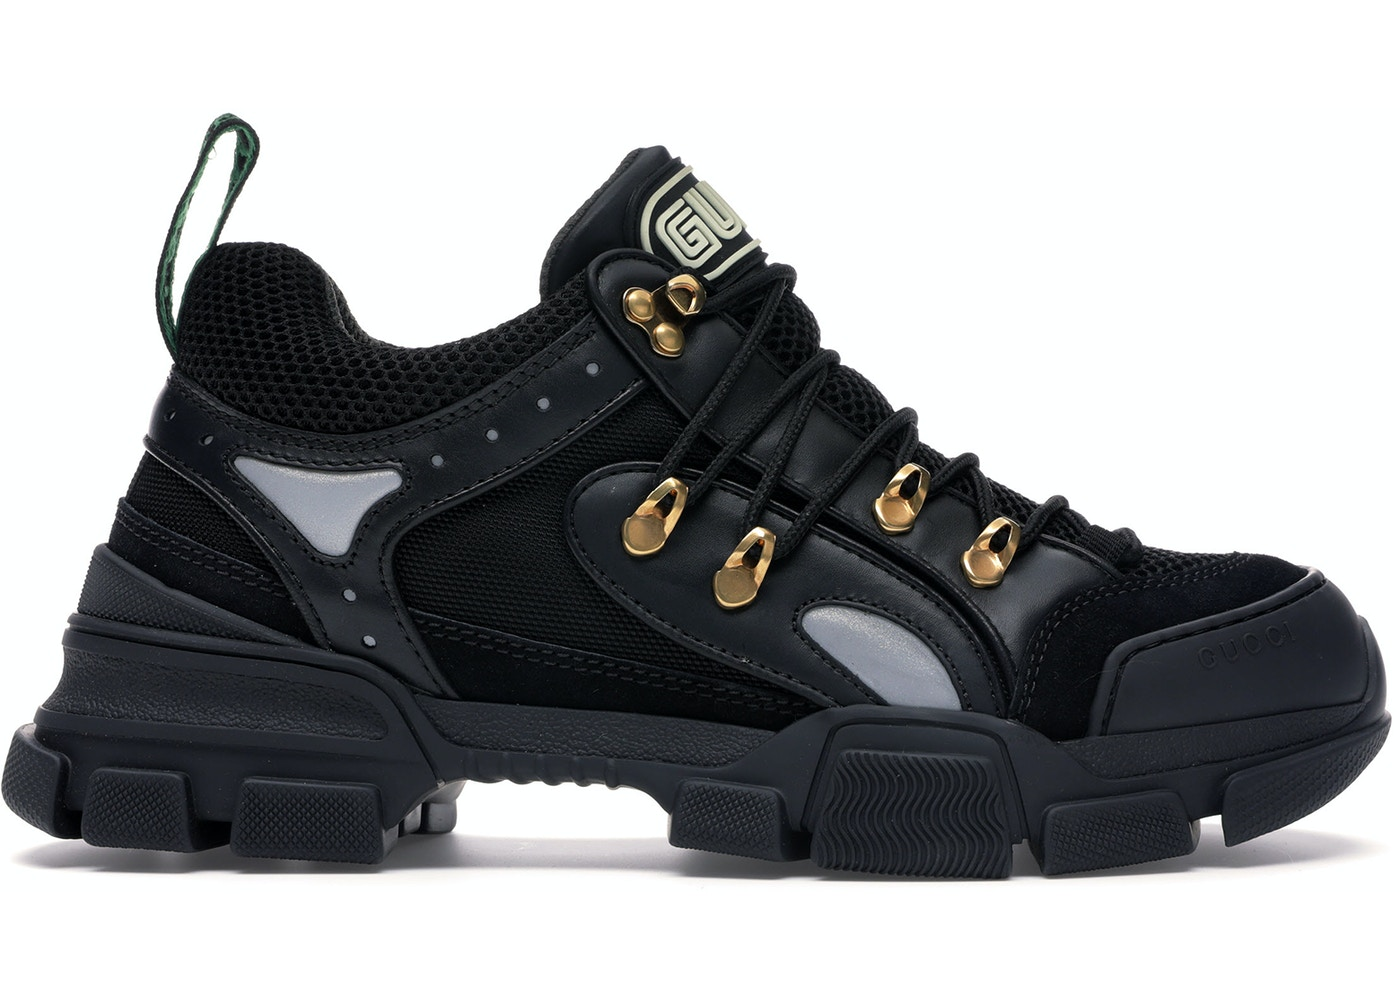 vivid and great in style cheap sale unbeatable price Gucci Flashtrek SEGA Black Leather